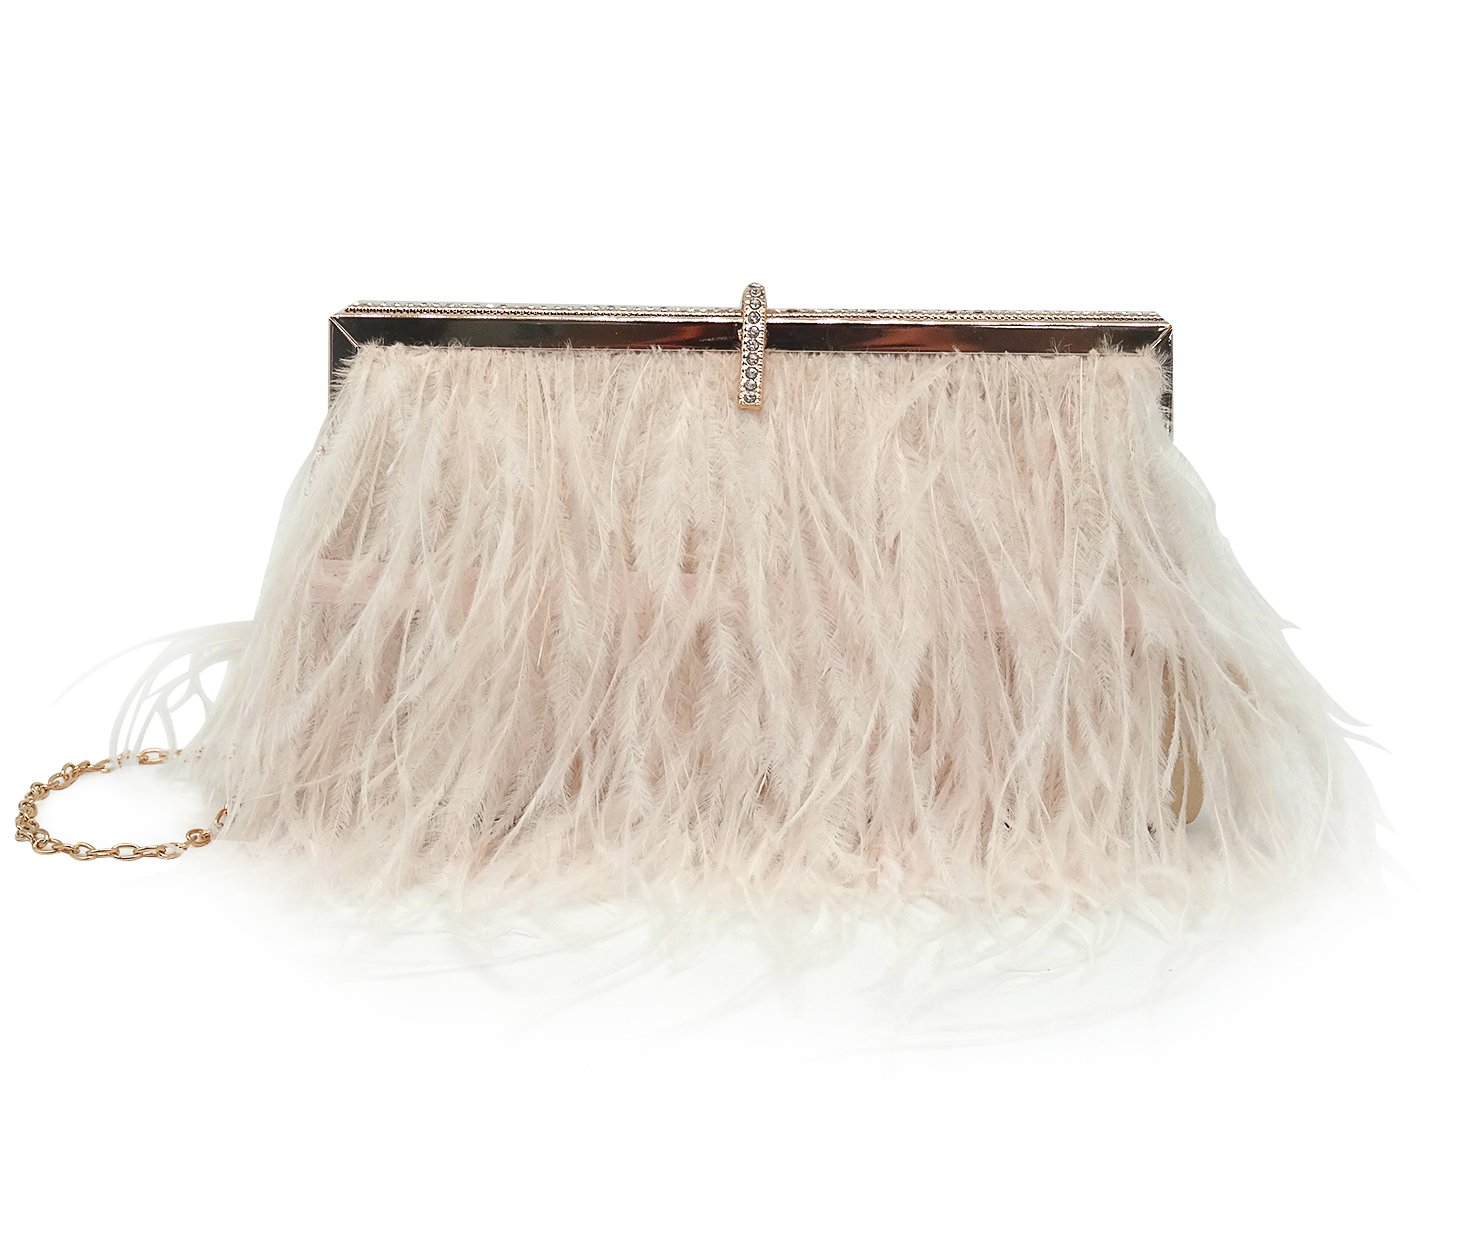 ZAKIA Women's Natural Ostrich Feather Evening Clutch Shoulder Bag for Wedding Party (Champagne)